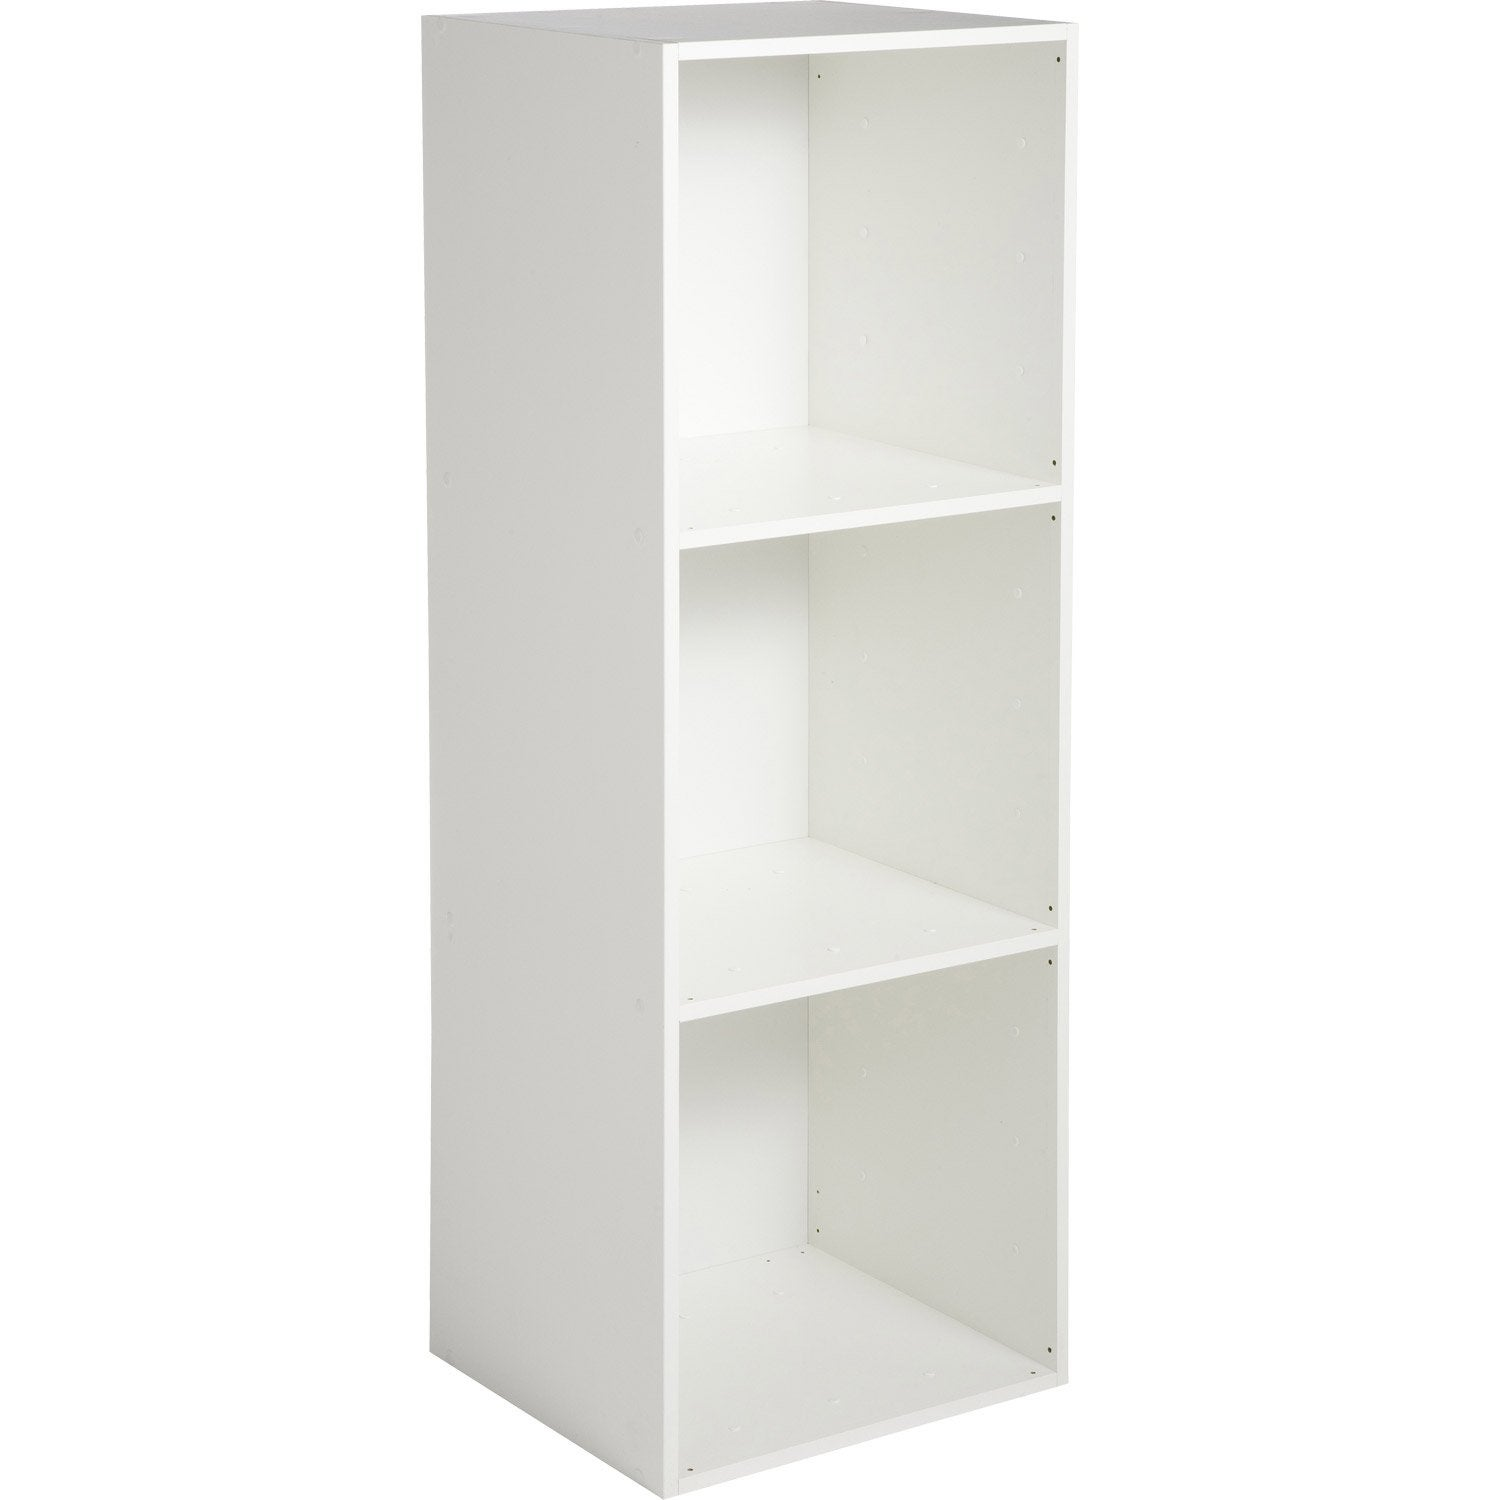 Etag re 3 cases multikaz blanche l35 2 x h103 2 x p31 7 cm leroy merlin for Etageres ceramiques blanche